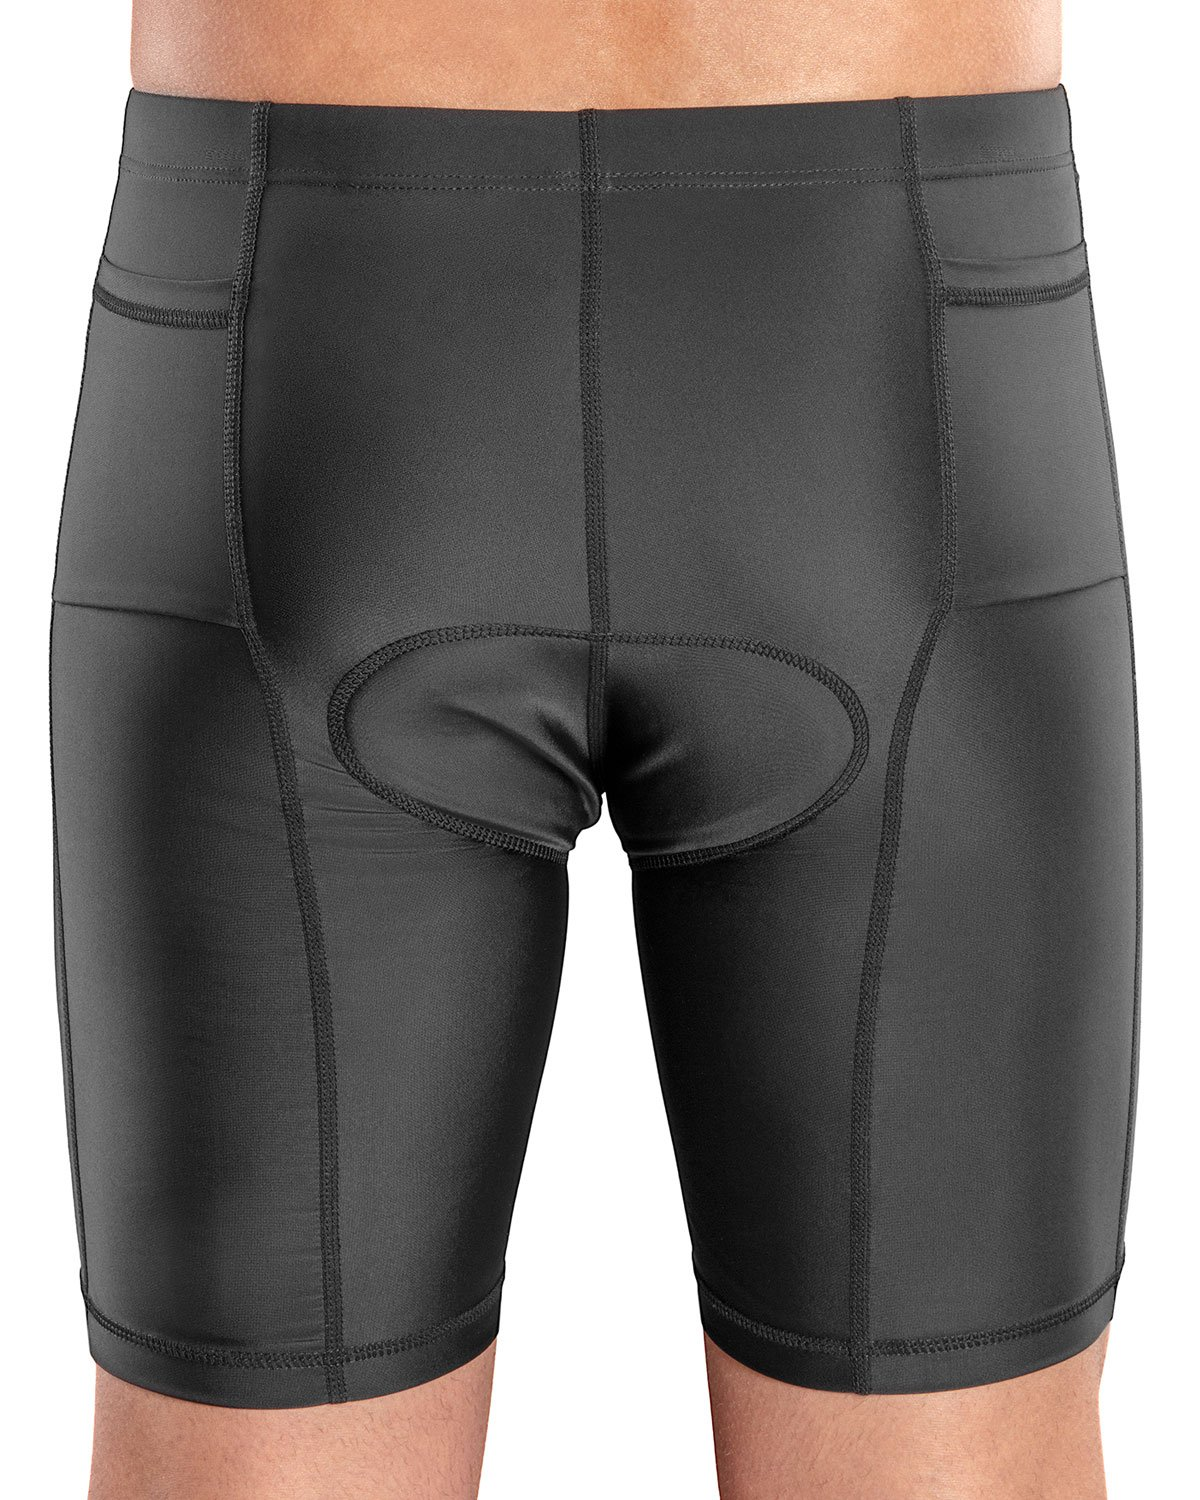 SLS3 Triathlon Shorts Men + Race Belt | 2 Pockets Tri Shorts Men | Trisuit Triathlon Men M by SLS3 (Image #5)